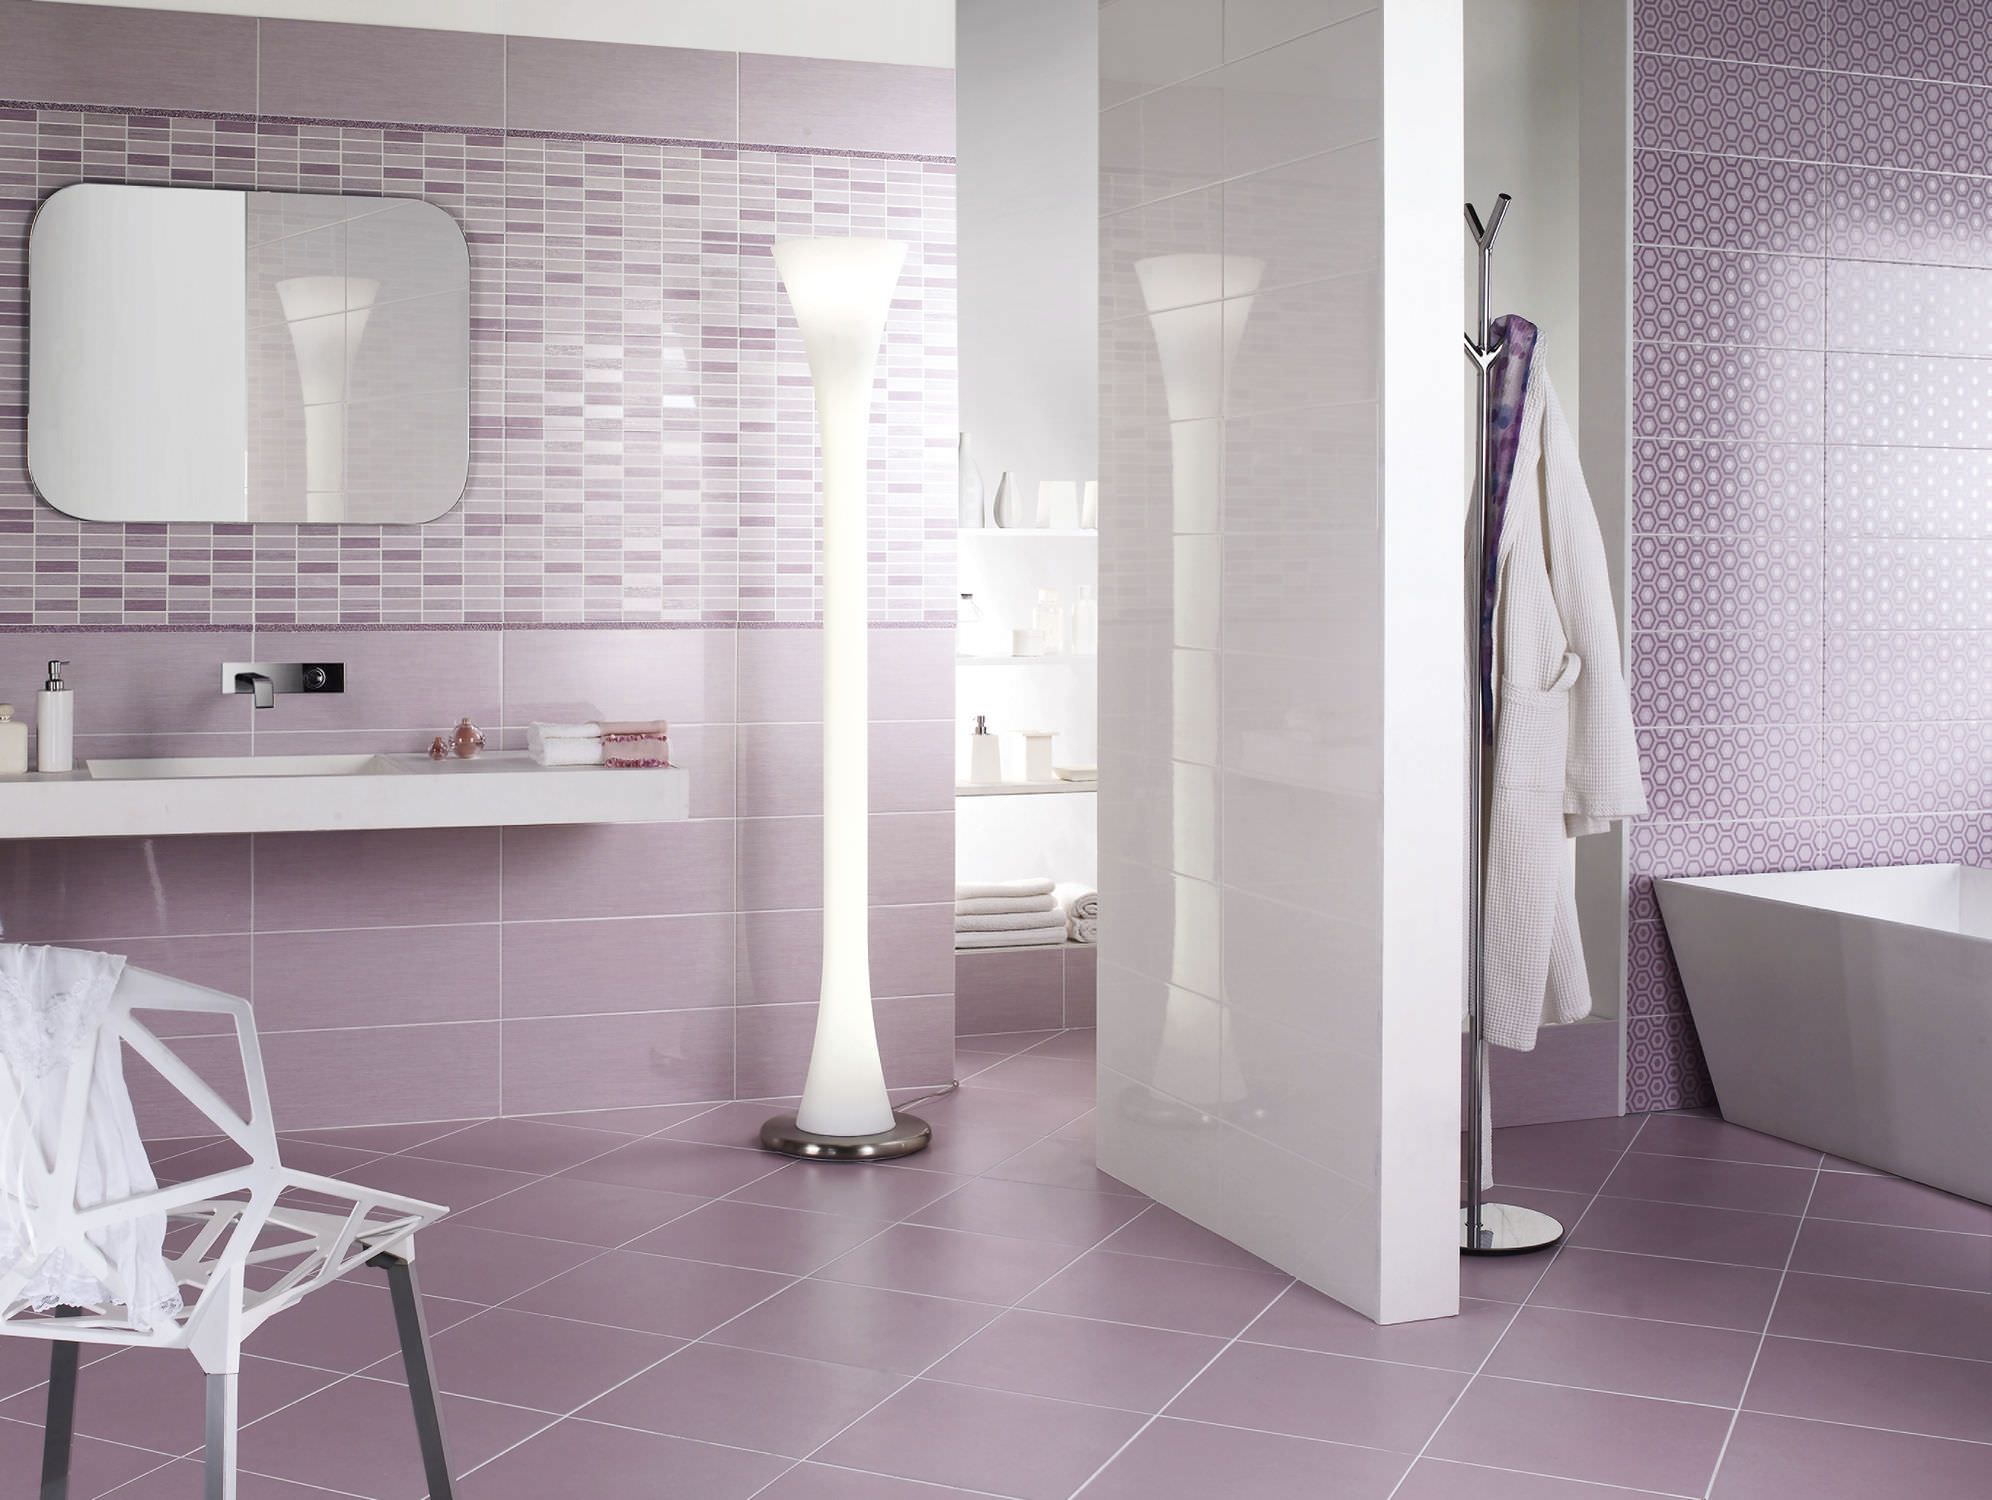 Bathroom Tiles For Home With Innovative Photos In India | eyagci.com